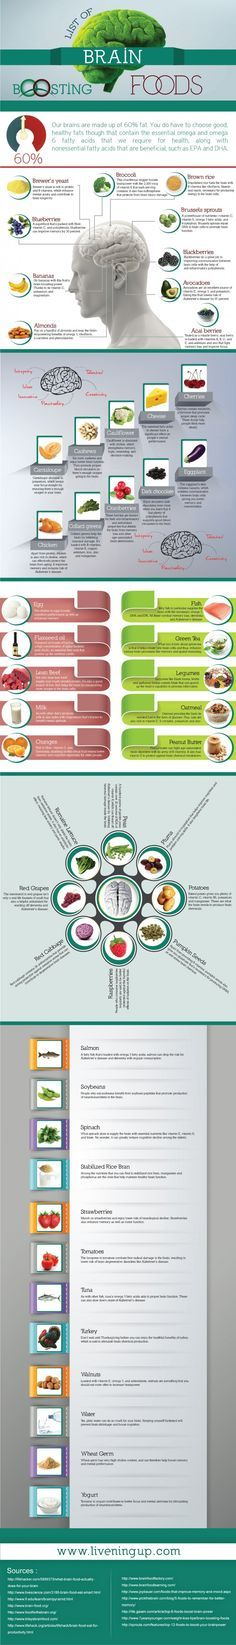 60 Brain Boosting Foods for Memory & Cognitive Function